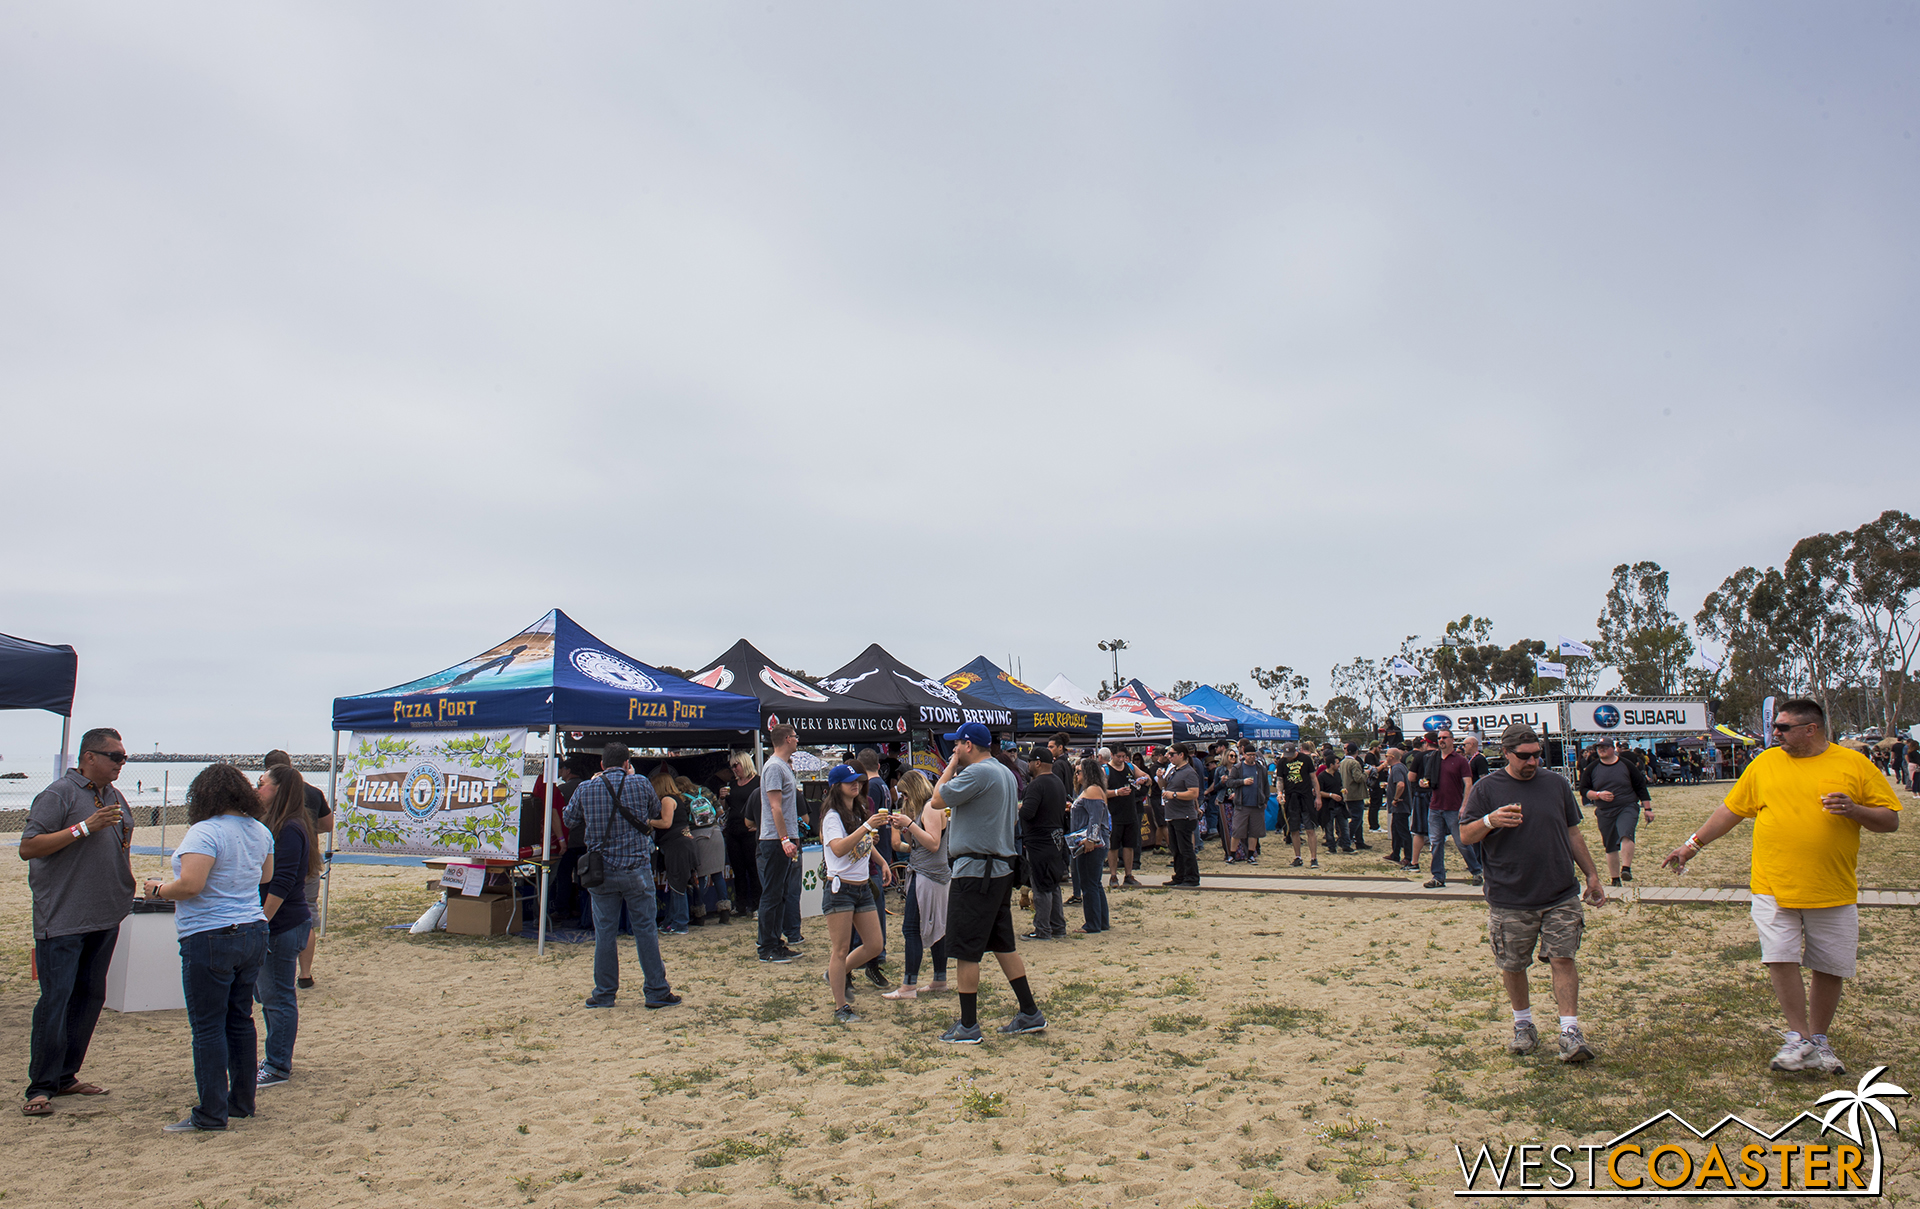 Each brewery had its own tent with its own branding.